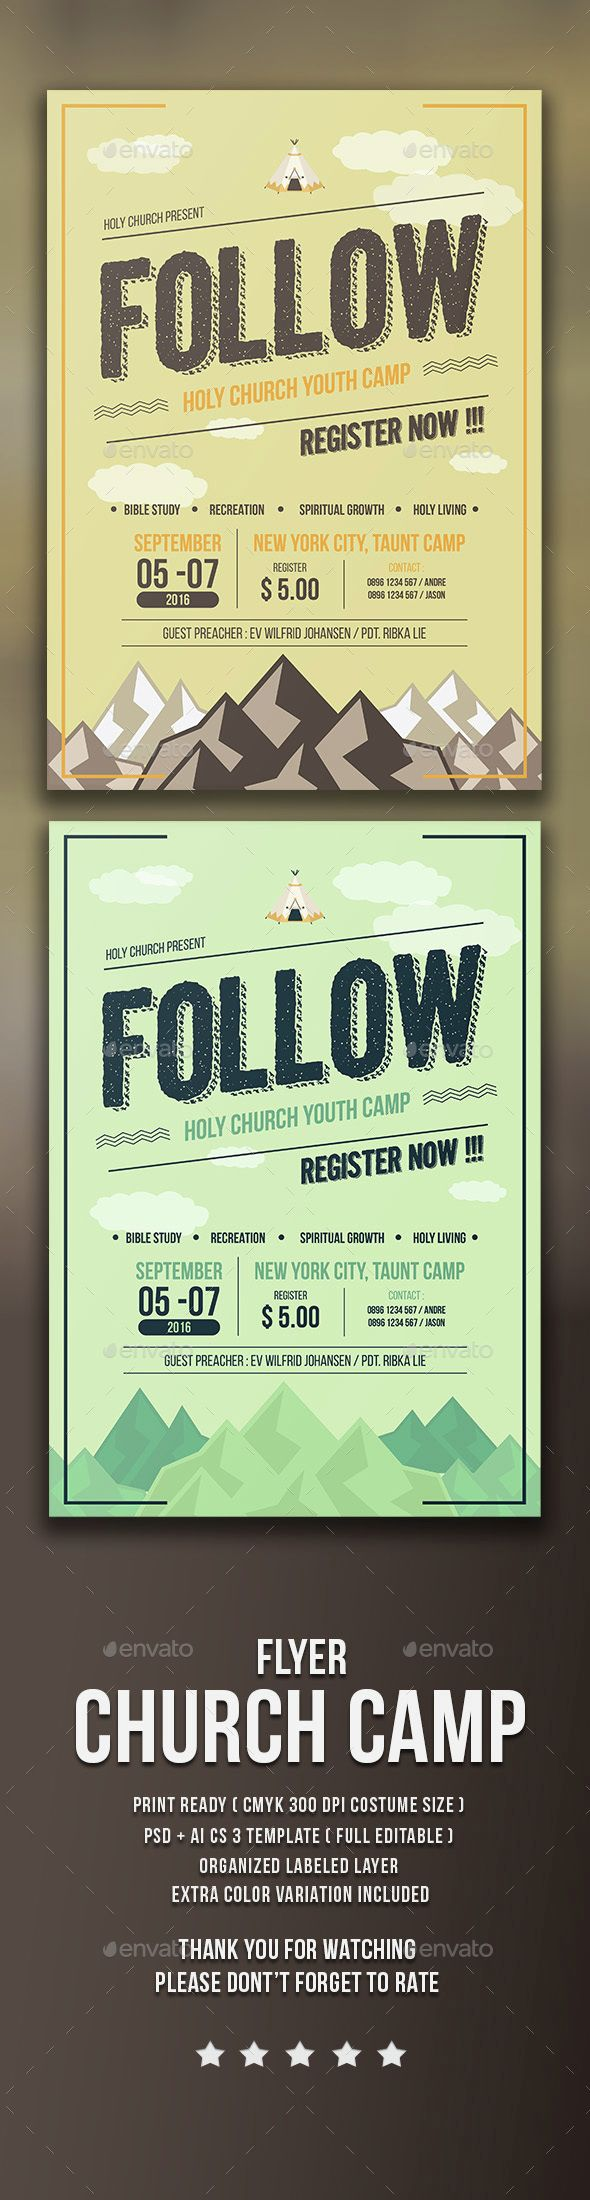 Church Camp Flyer Template PSD. Download here: graphicprime.com/...